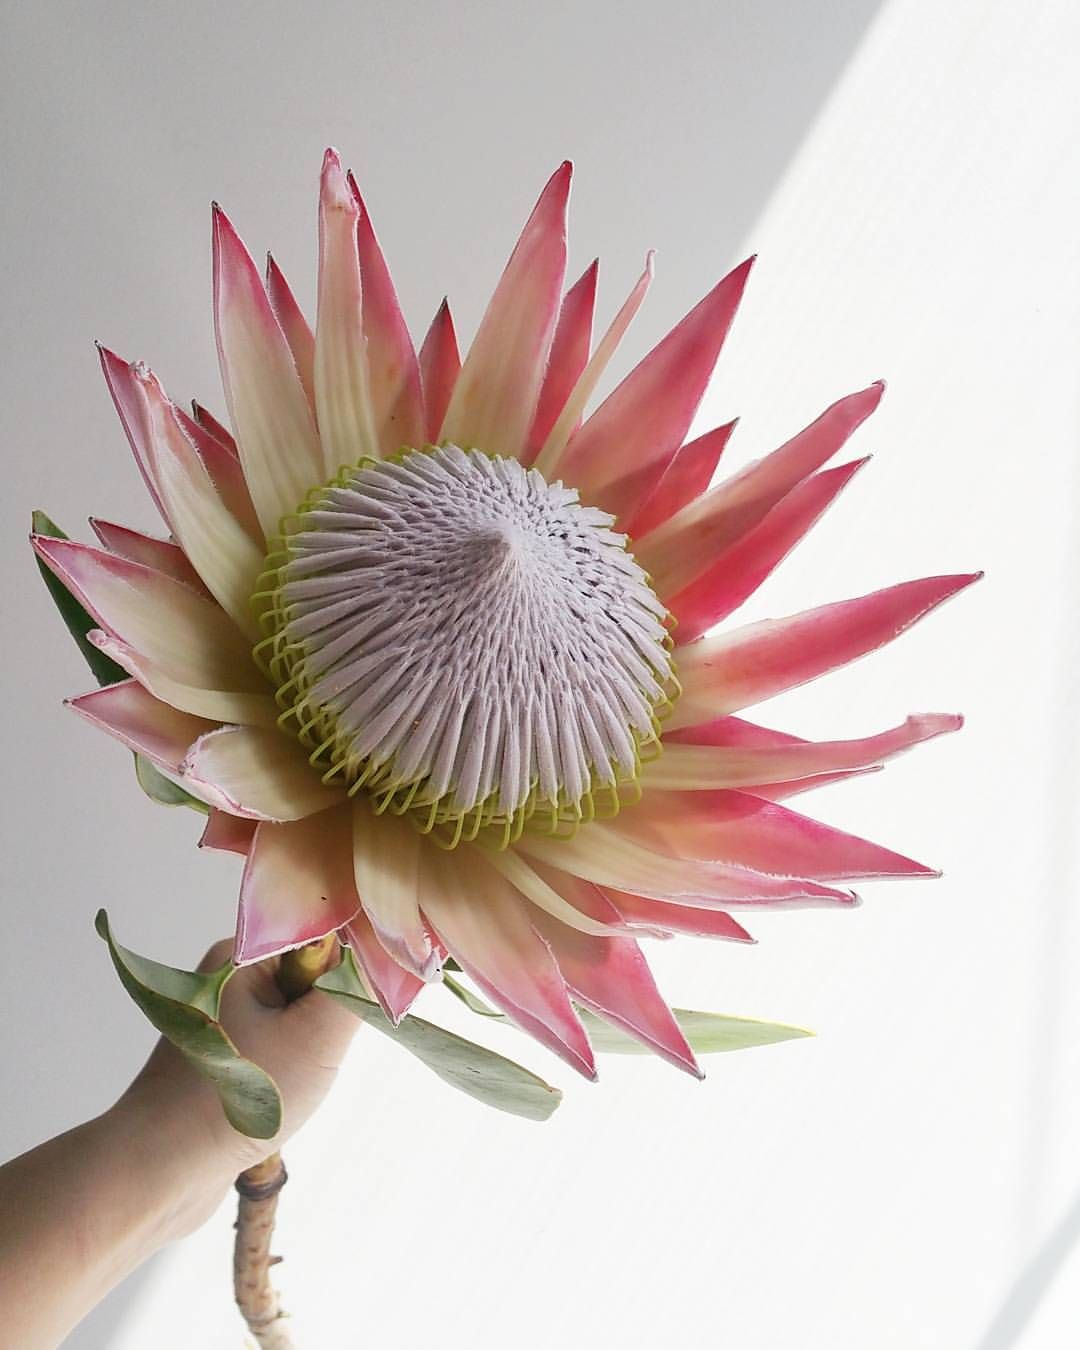 1 567 Likes 23 Comments Bloombox Co Sydney Melbourne Bloomboxco On Instagram Last Week Melbourne Customers Found One Flower Designs Protea Art Floral